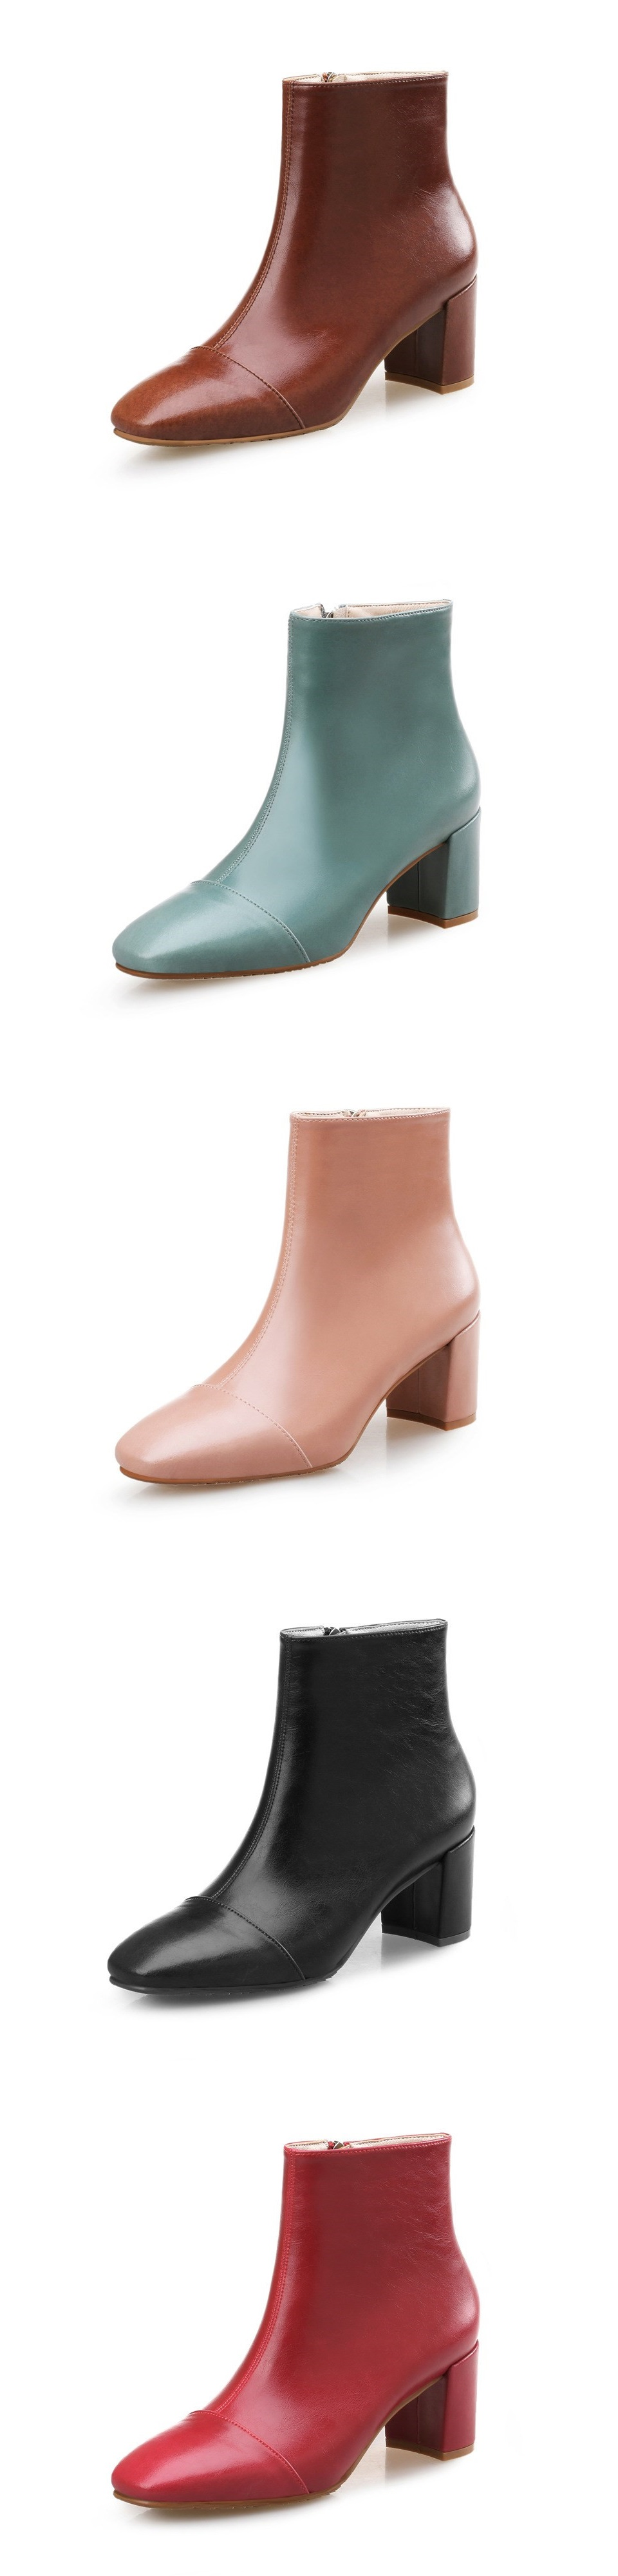 boots (1)